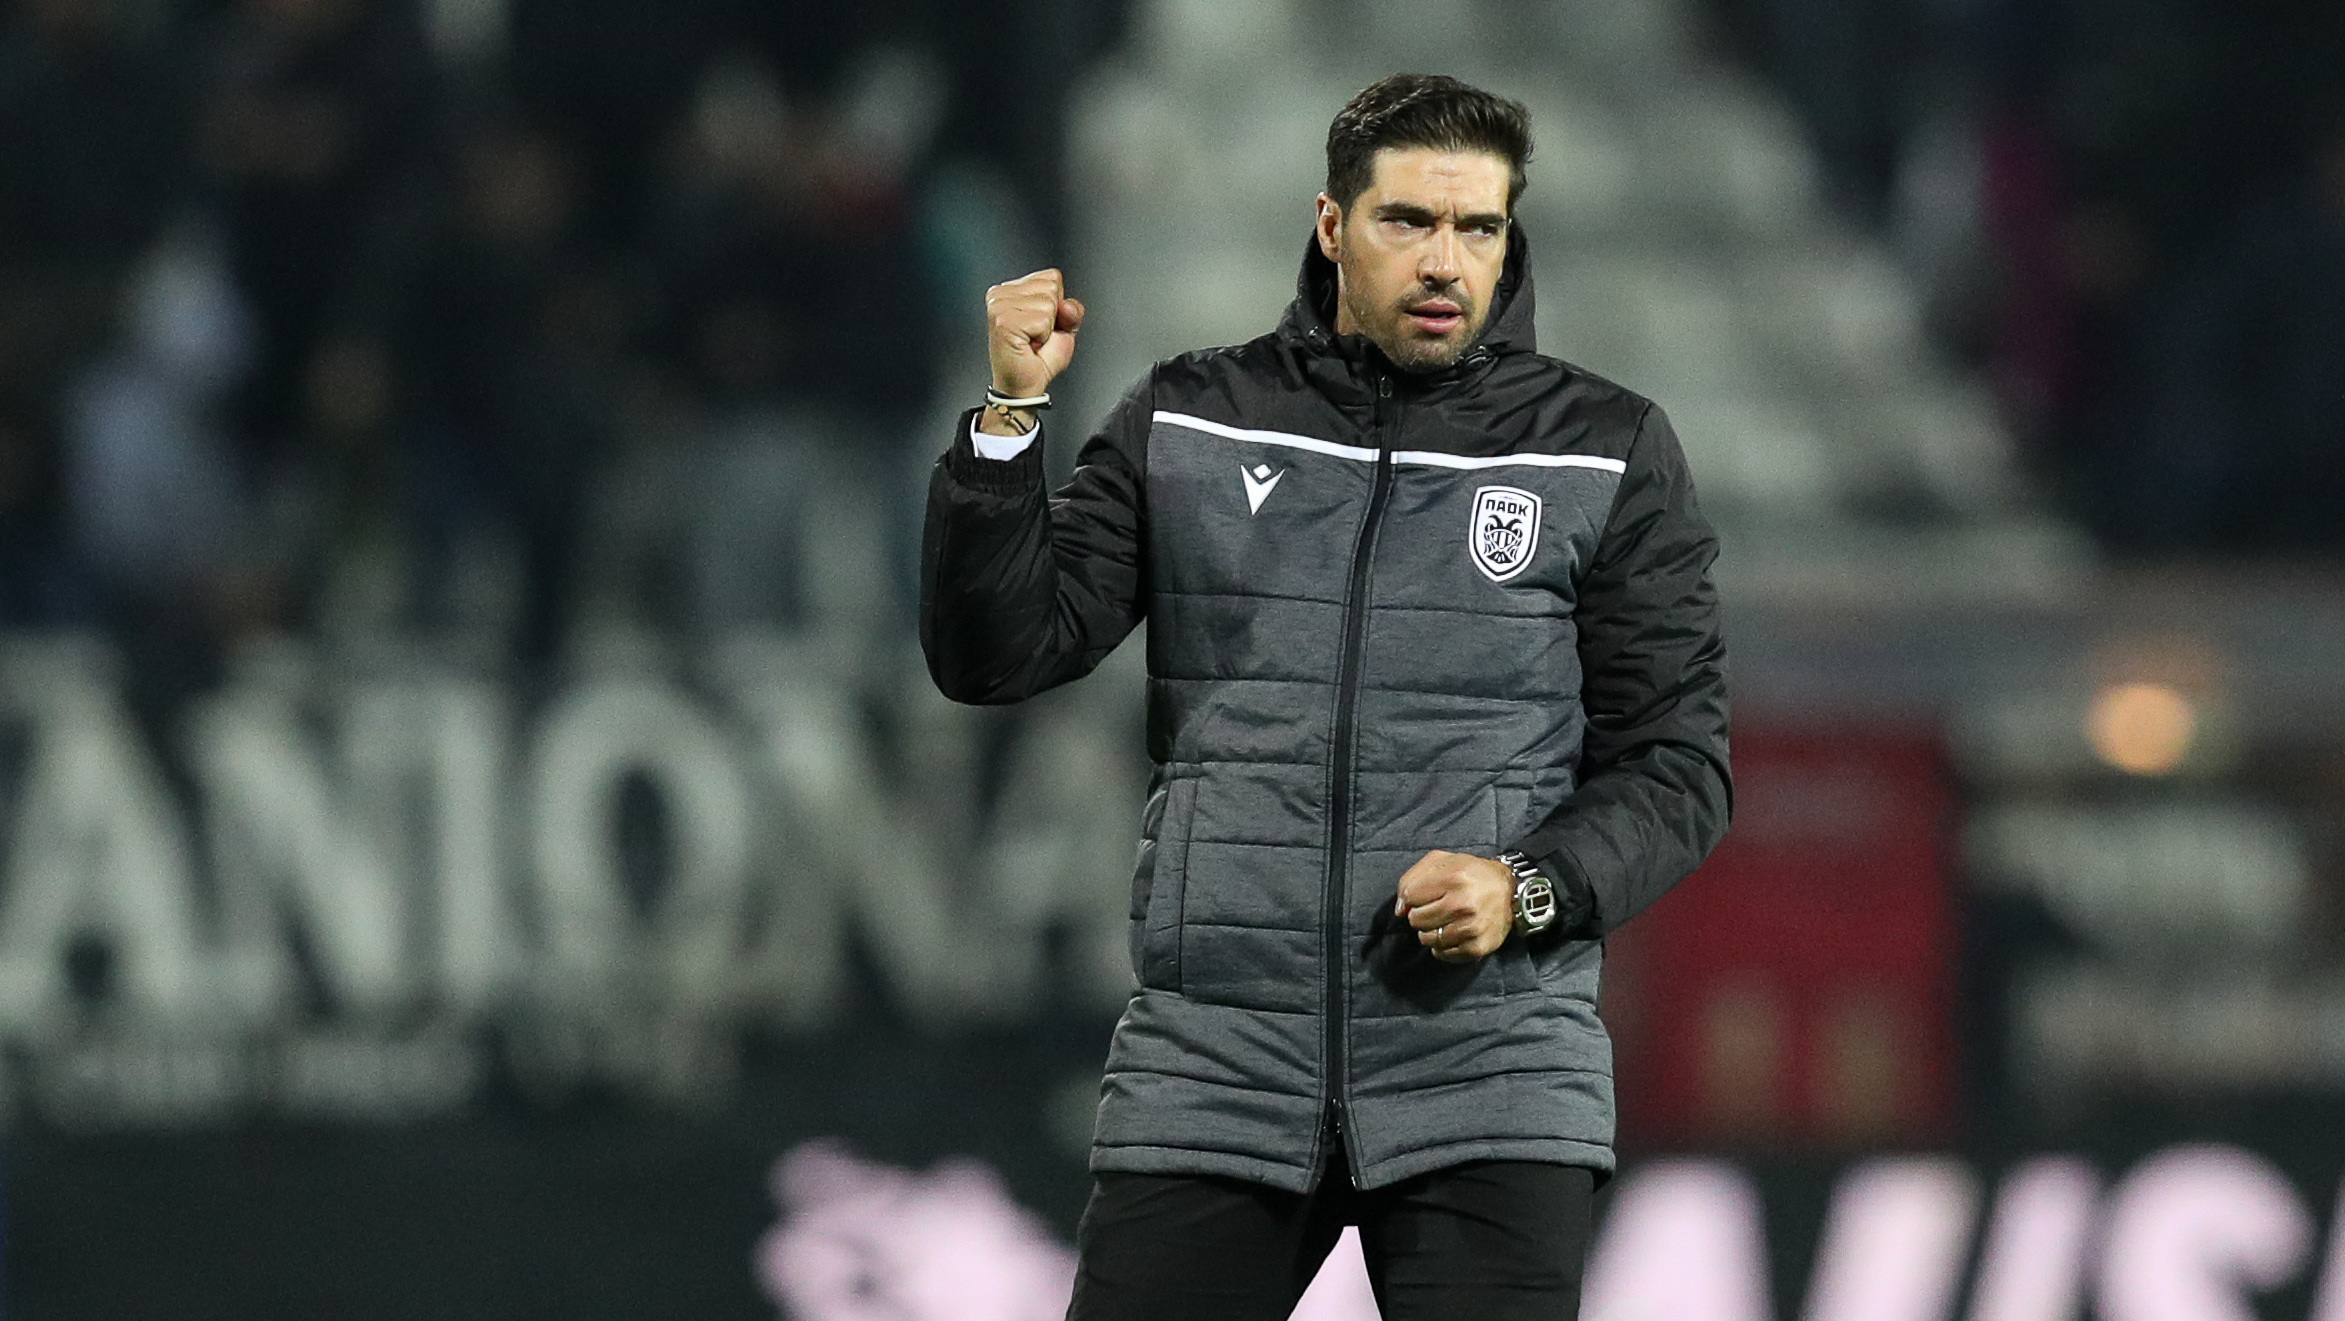 Ferreira talks about PAOK-Xanthi